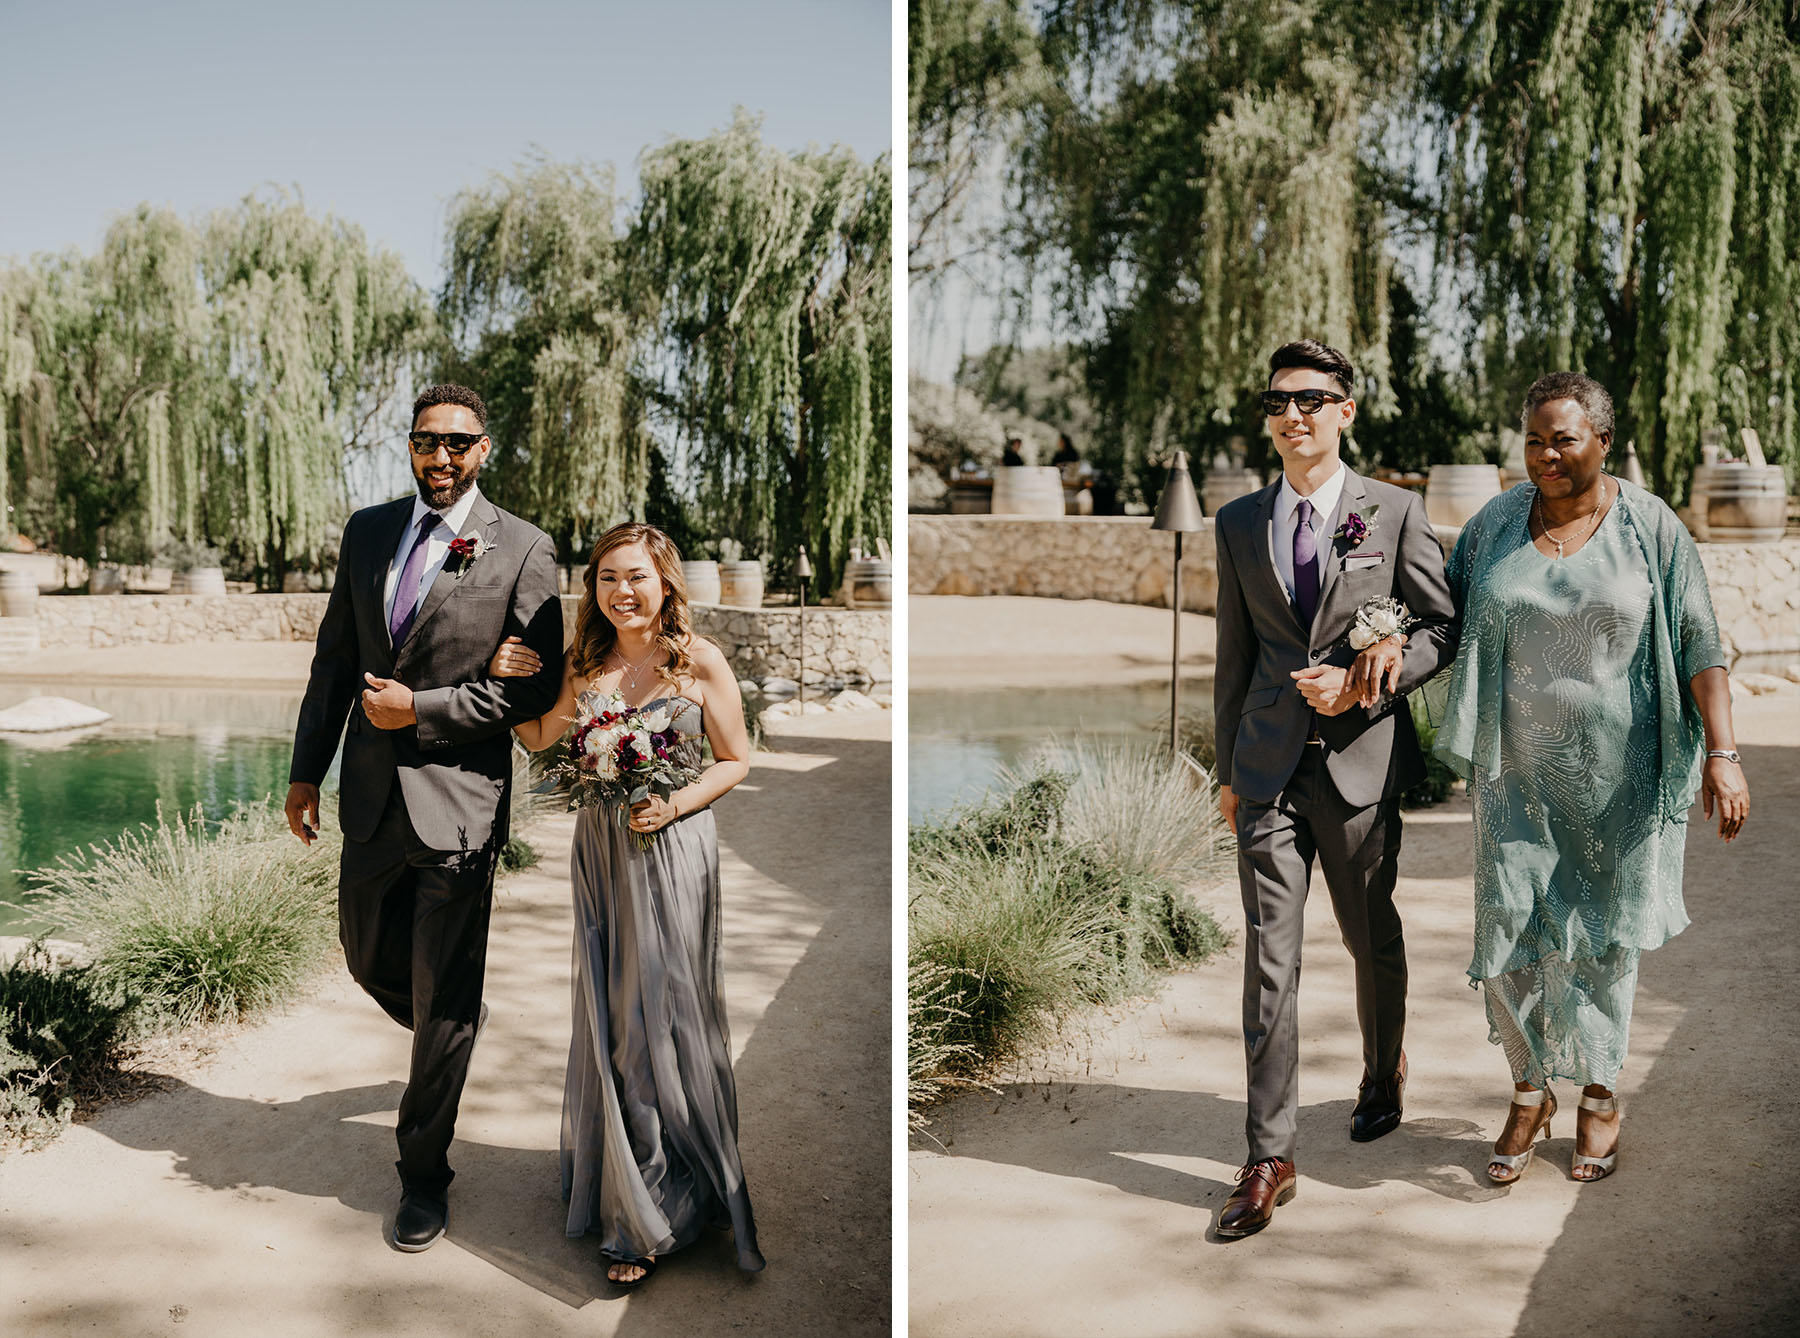 Paso-Robles-Wedding-Diana-Lake-Photography-7.jpg